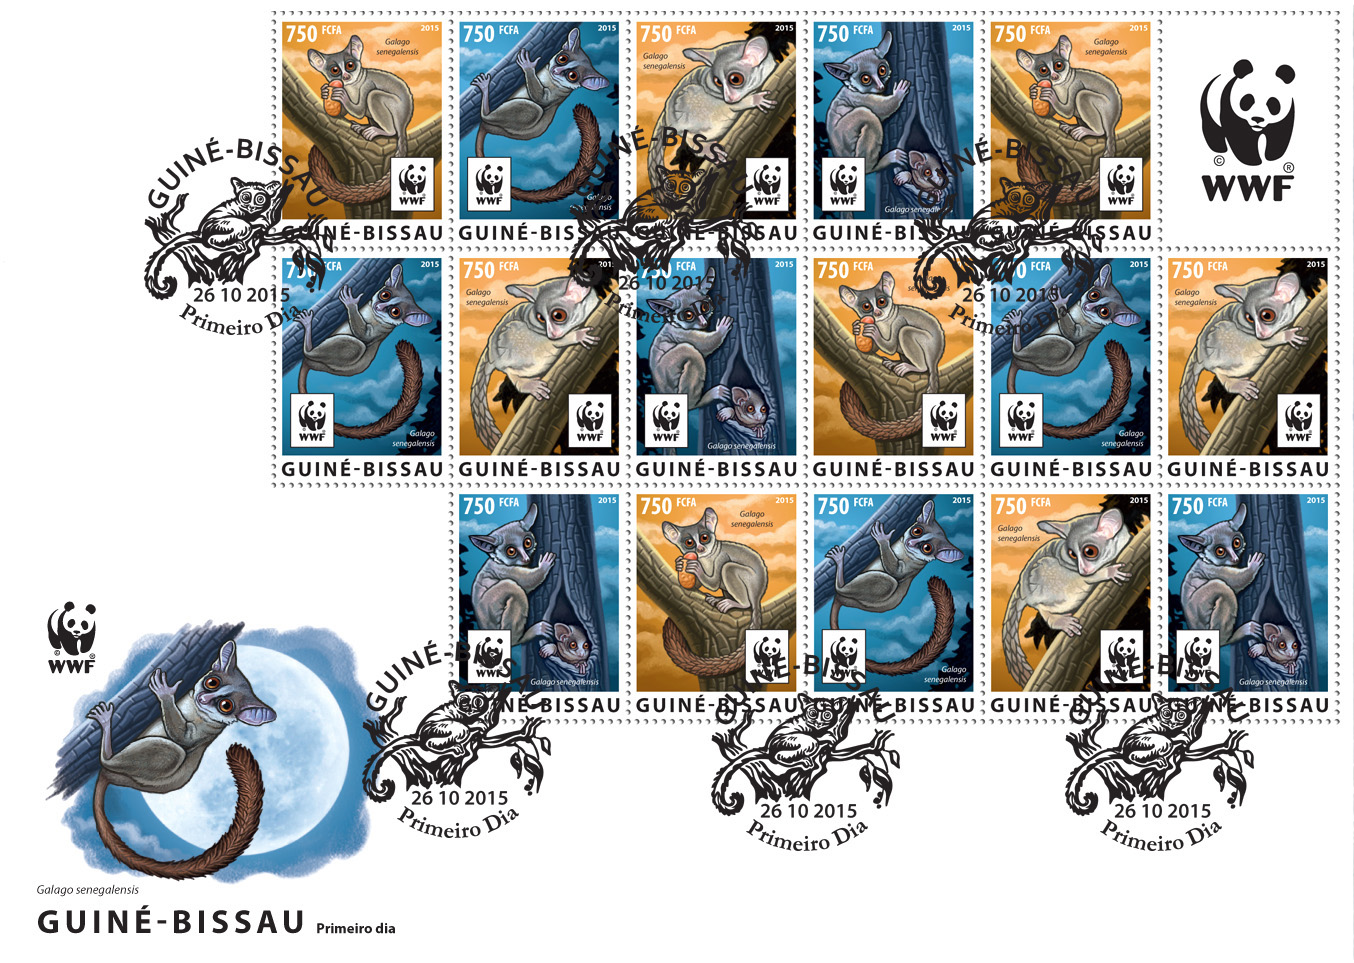 WWF – Galago (FDC) - Issue of Guinée-Bissau postage stamps